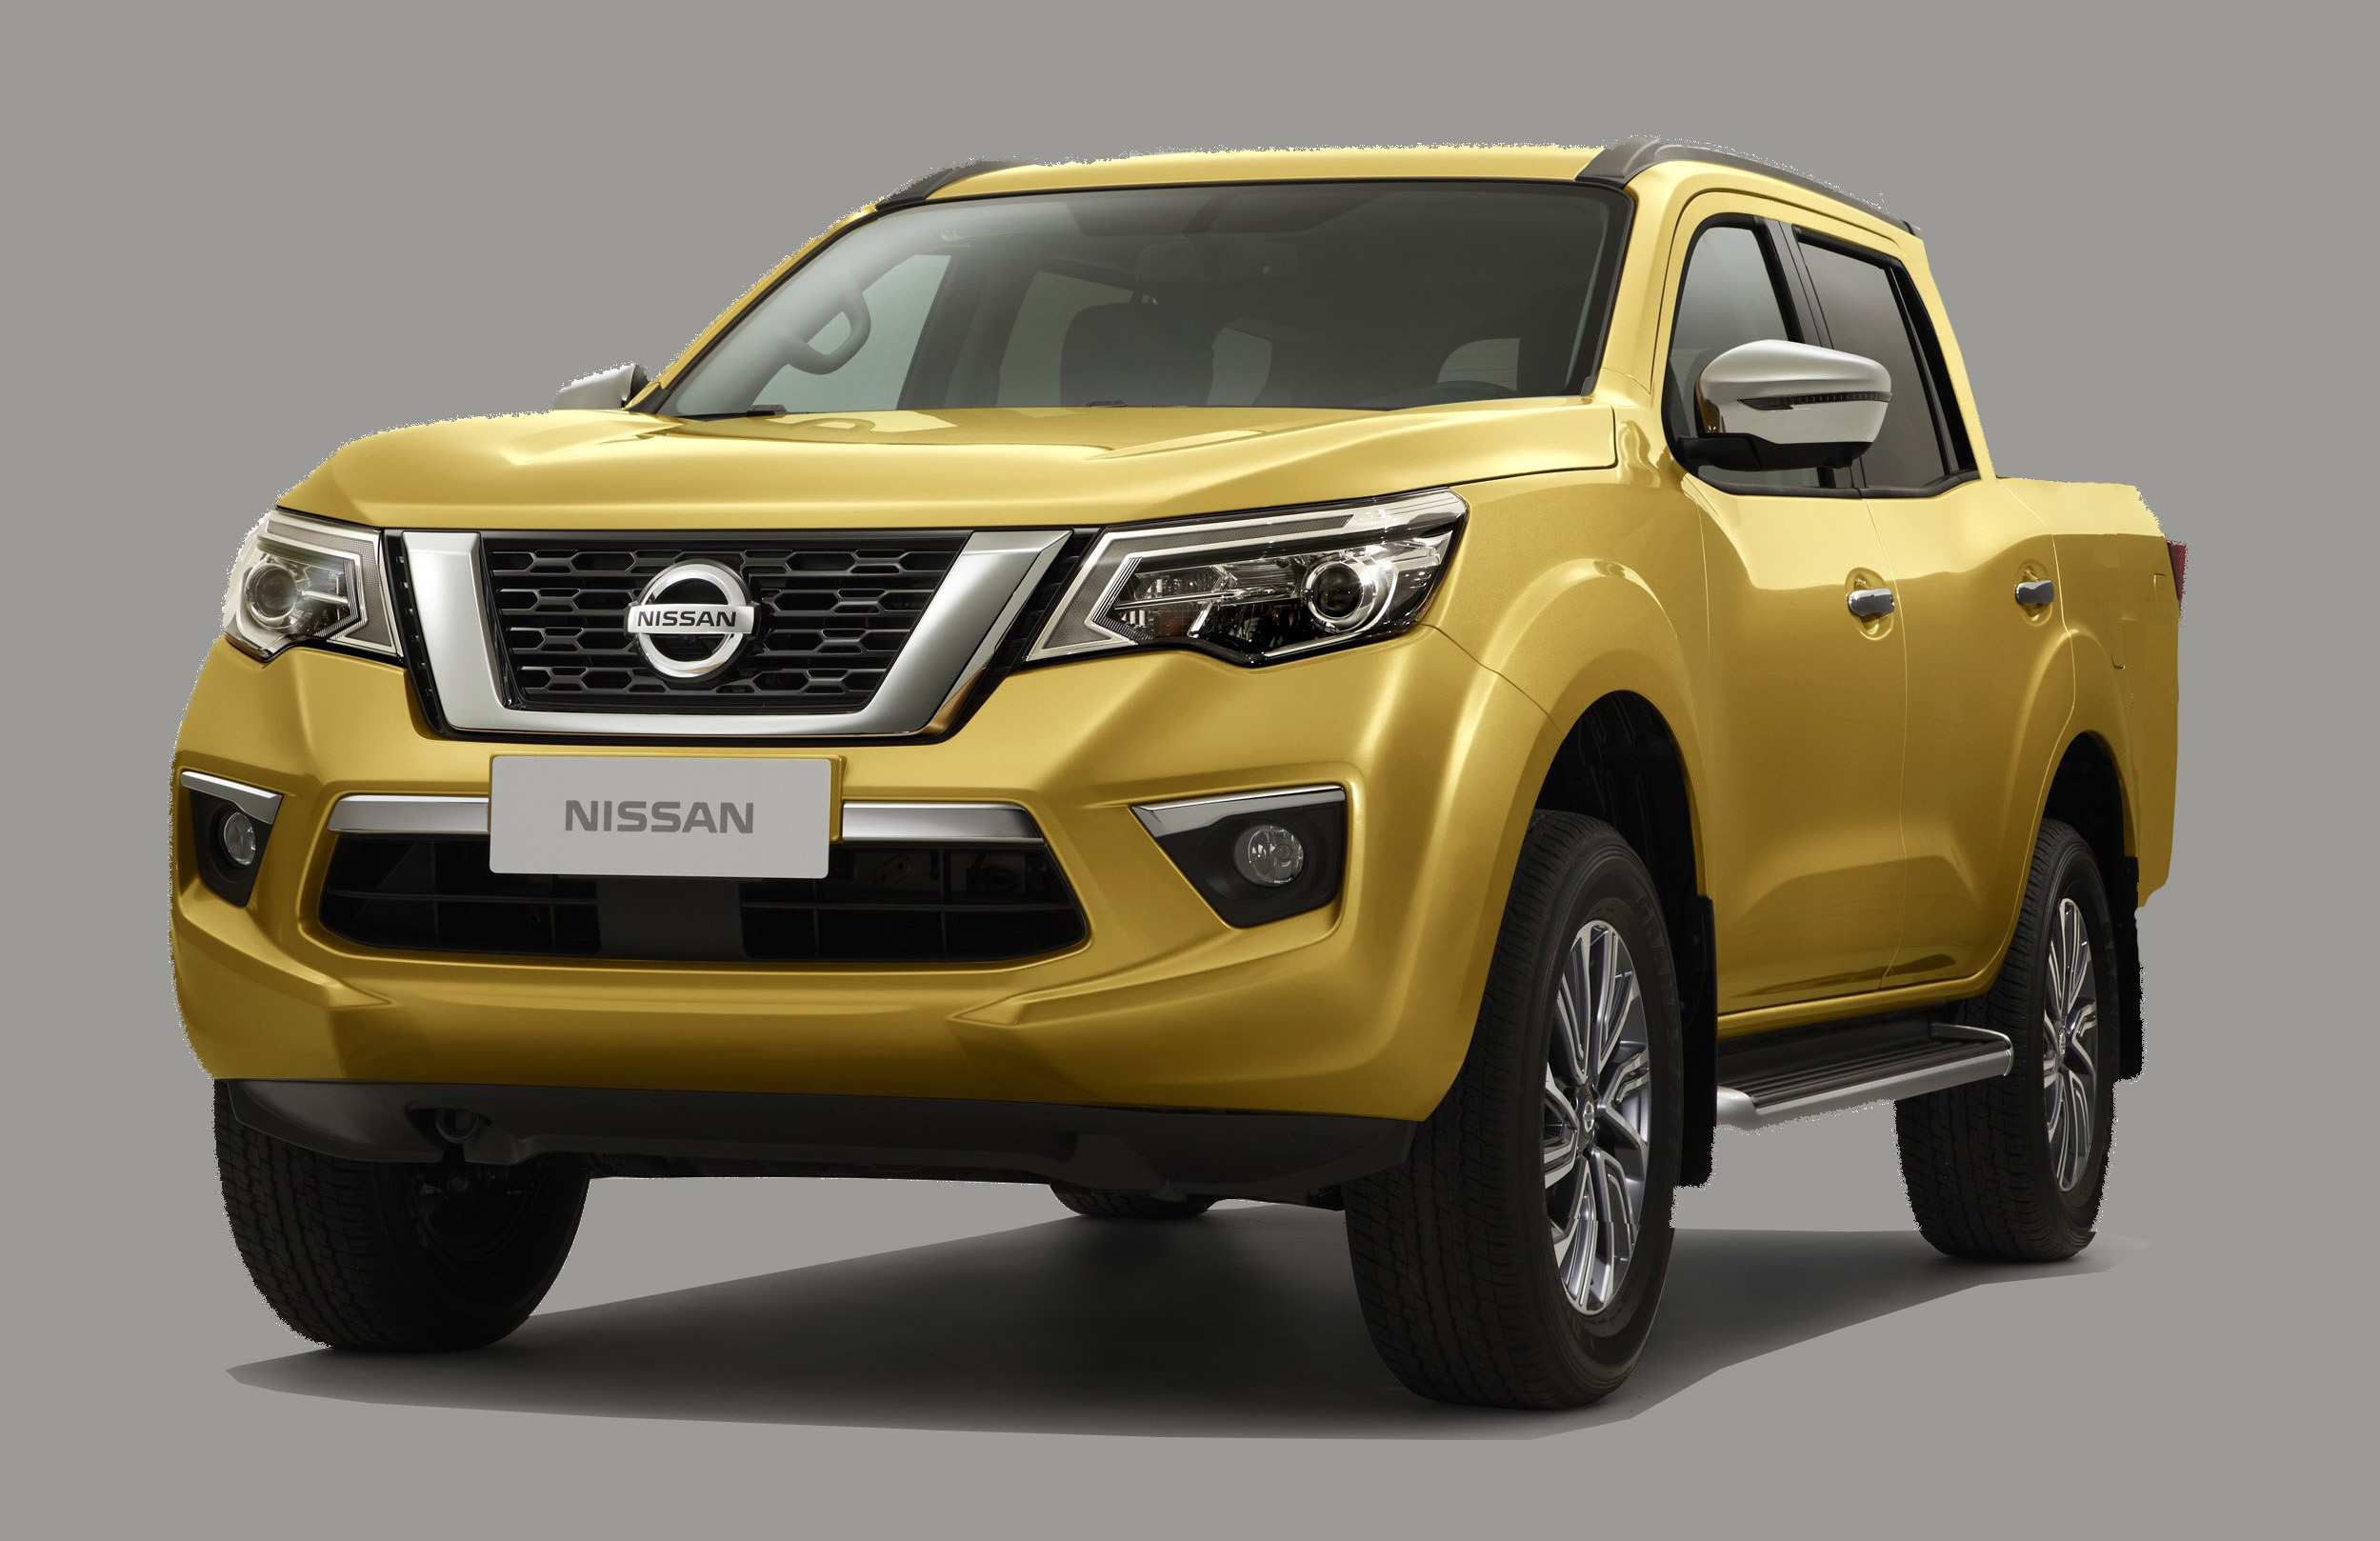 33 All New 2020 Nissan Navara Uk Photos for 2020 Nissan Navara Uk